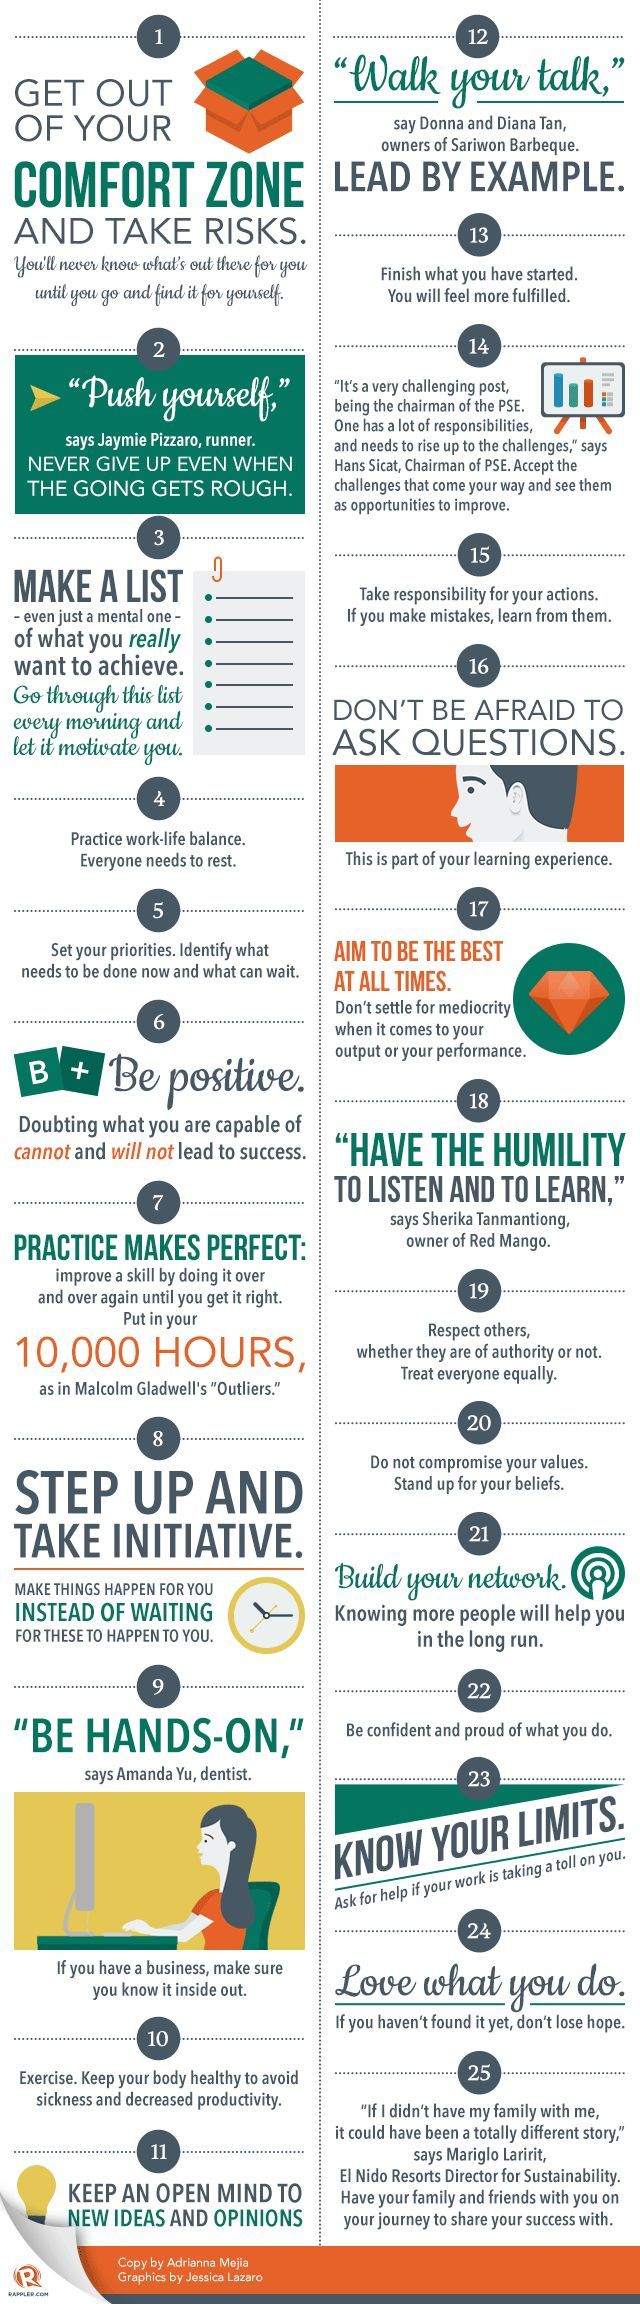 How to Push Yourself Out of Your Comfort Zone - Cool infographic from LifeHack #selfdevelopment #lifecoaching